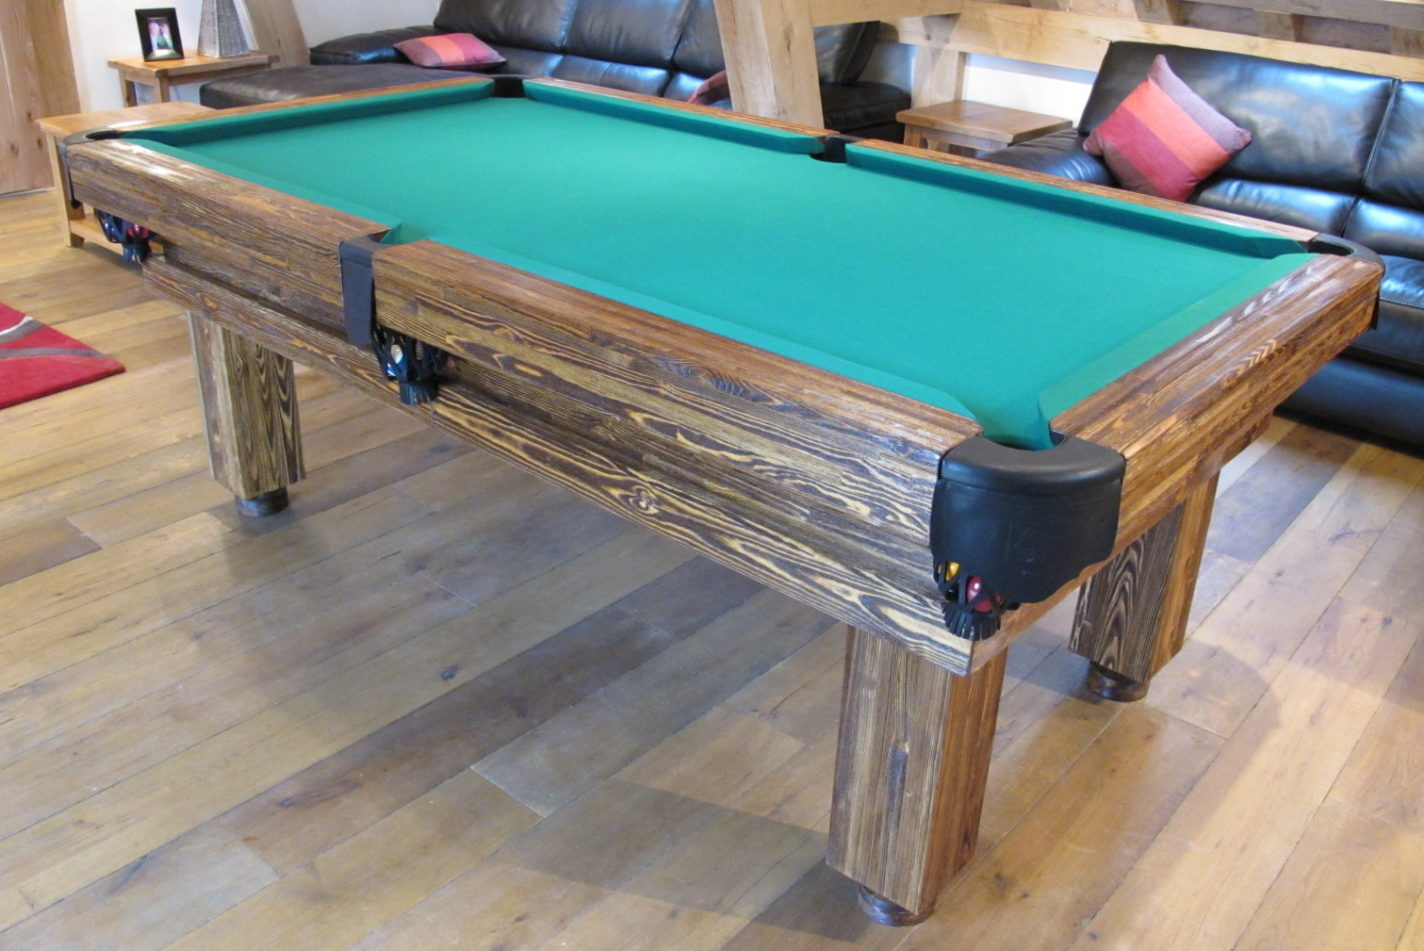 Artemis Pool Table, Lithuania